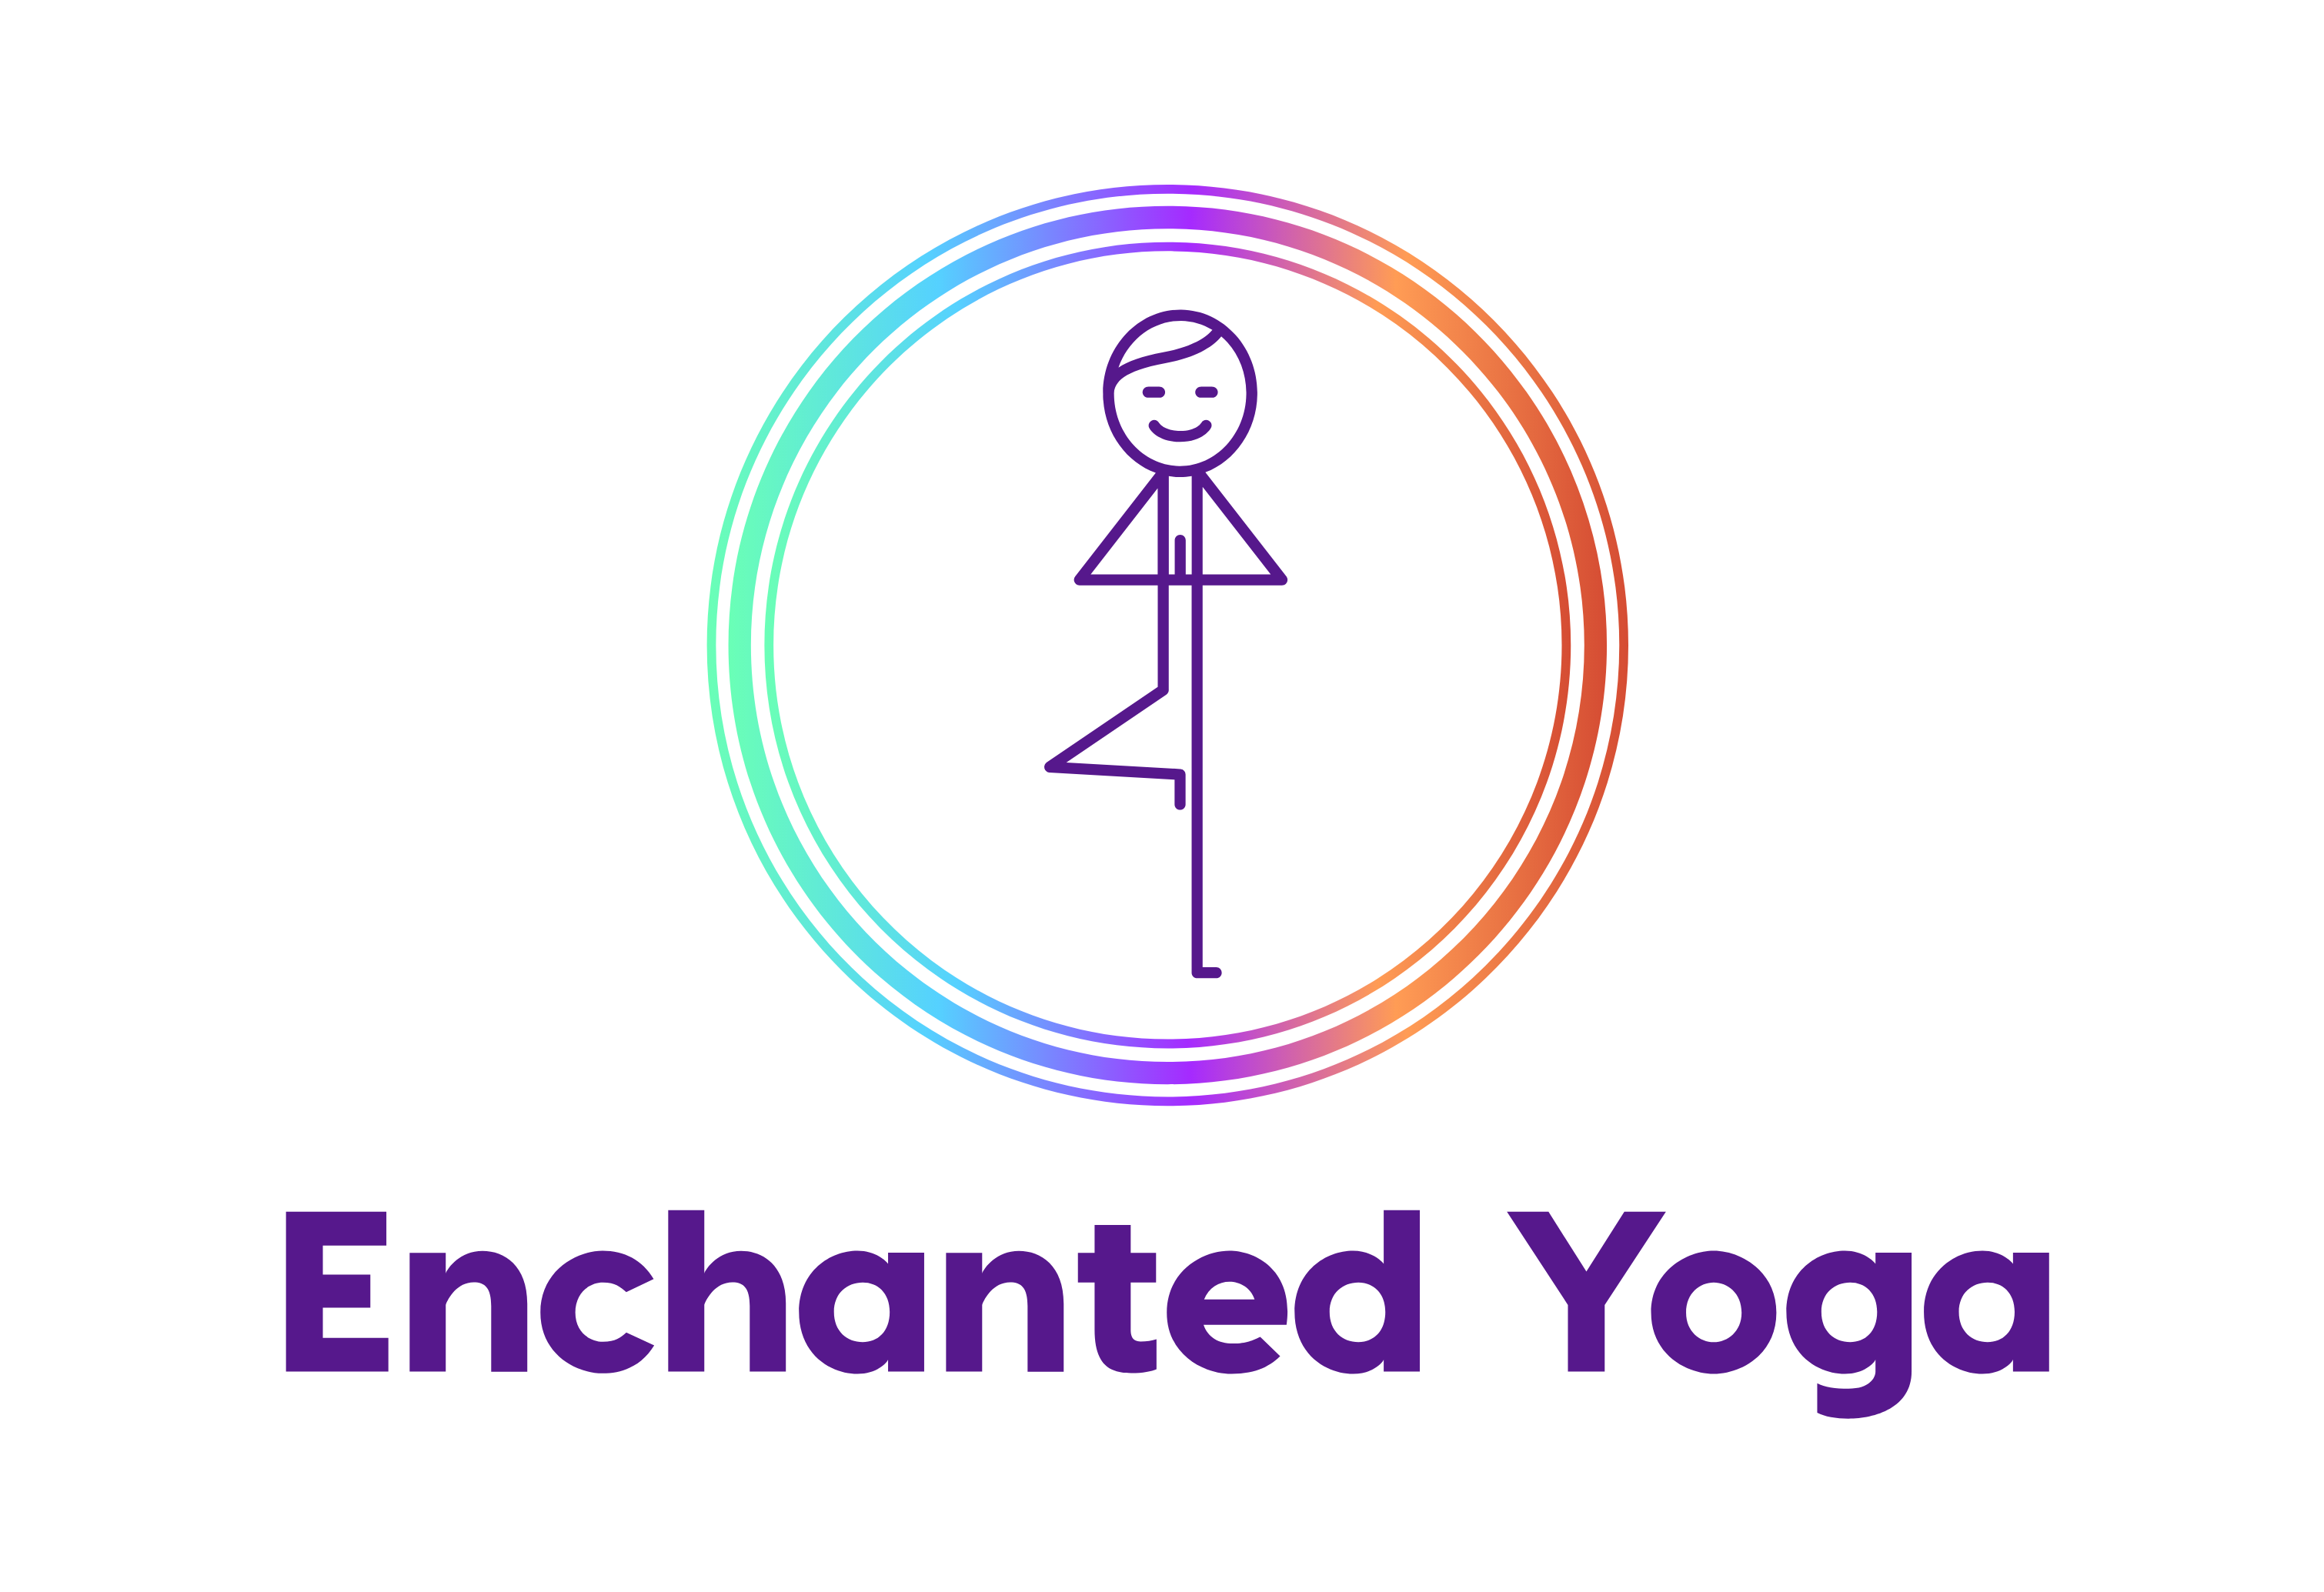 enchantedyoga.ie